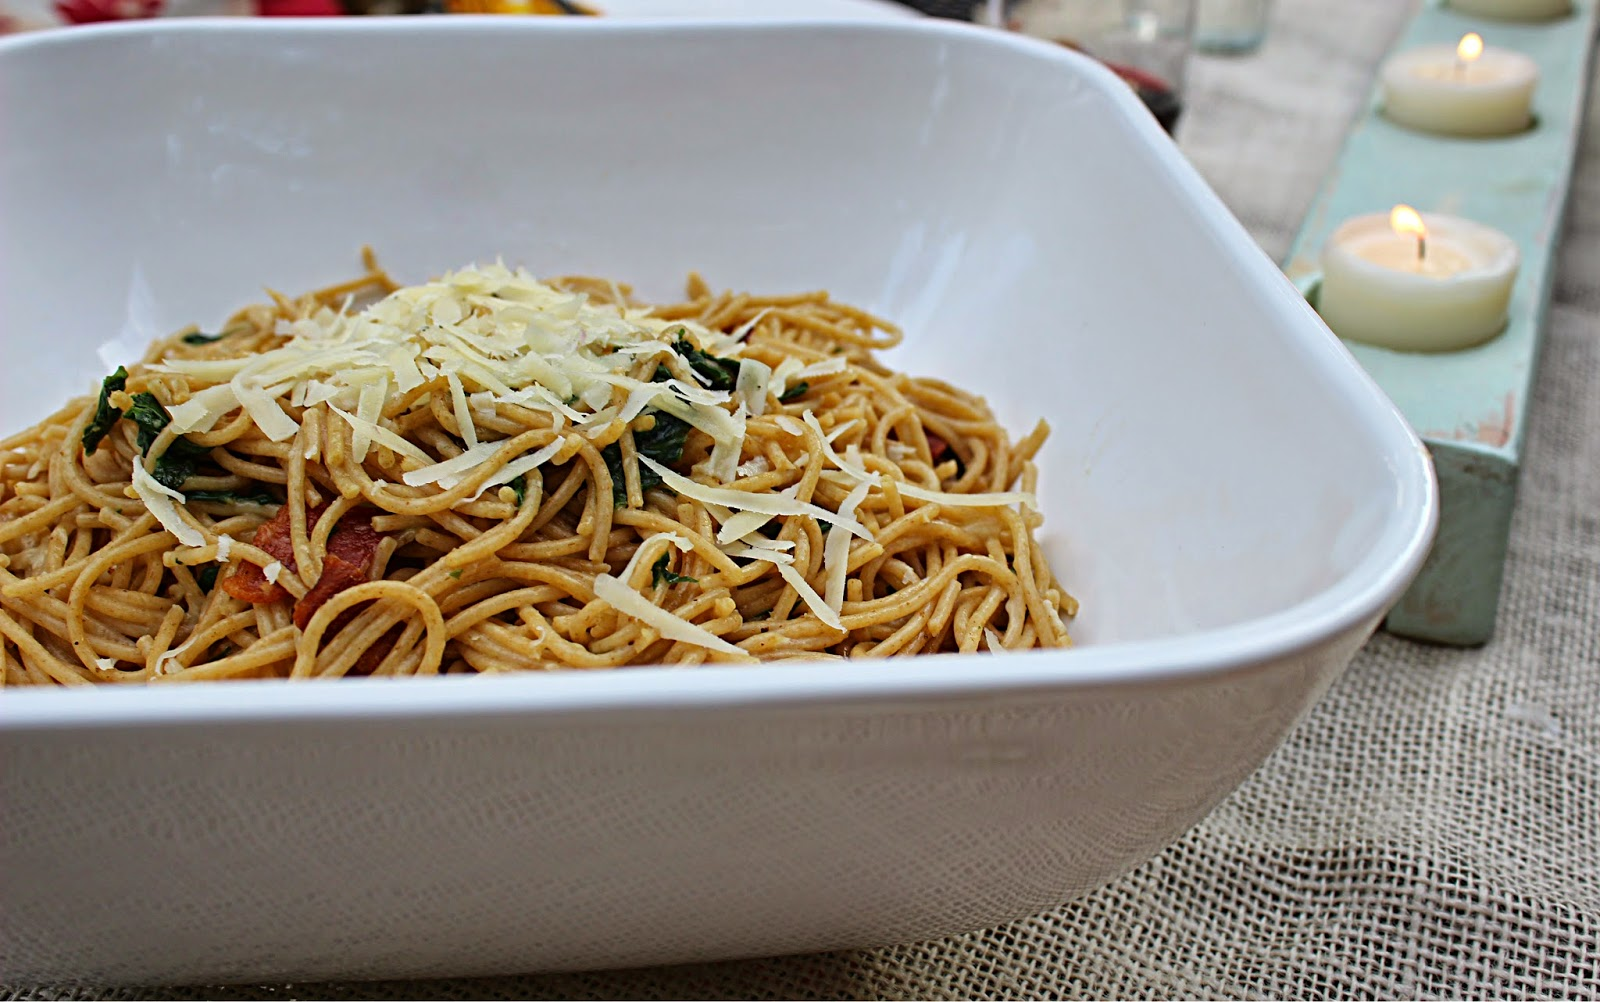 Spaghetti+Carbonara+with+Garlicky+Greens.jpg